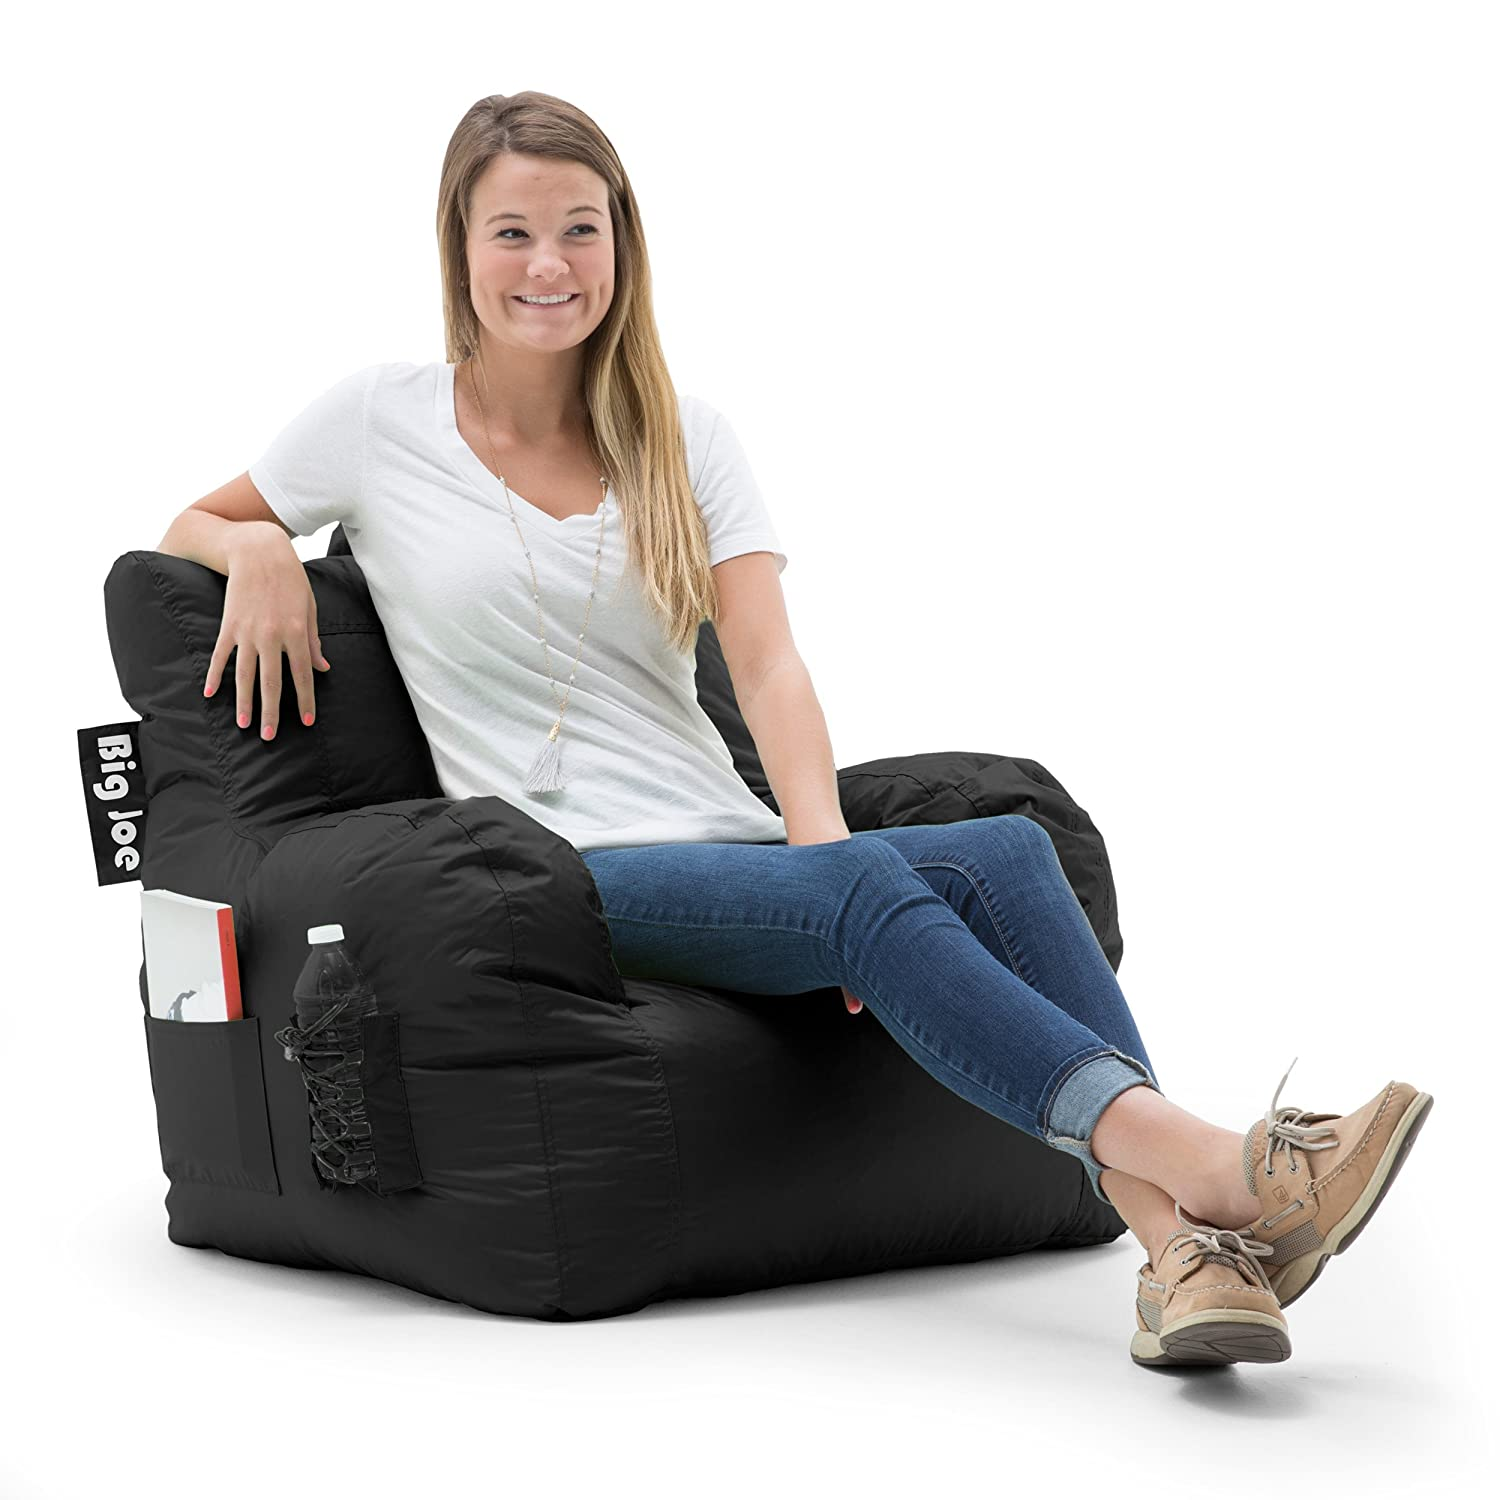 Big Joe Dorm Bean Bag Chair Stretch Limo Black